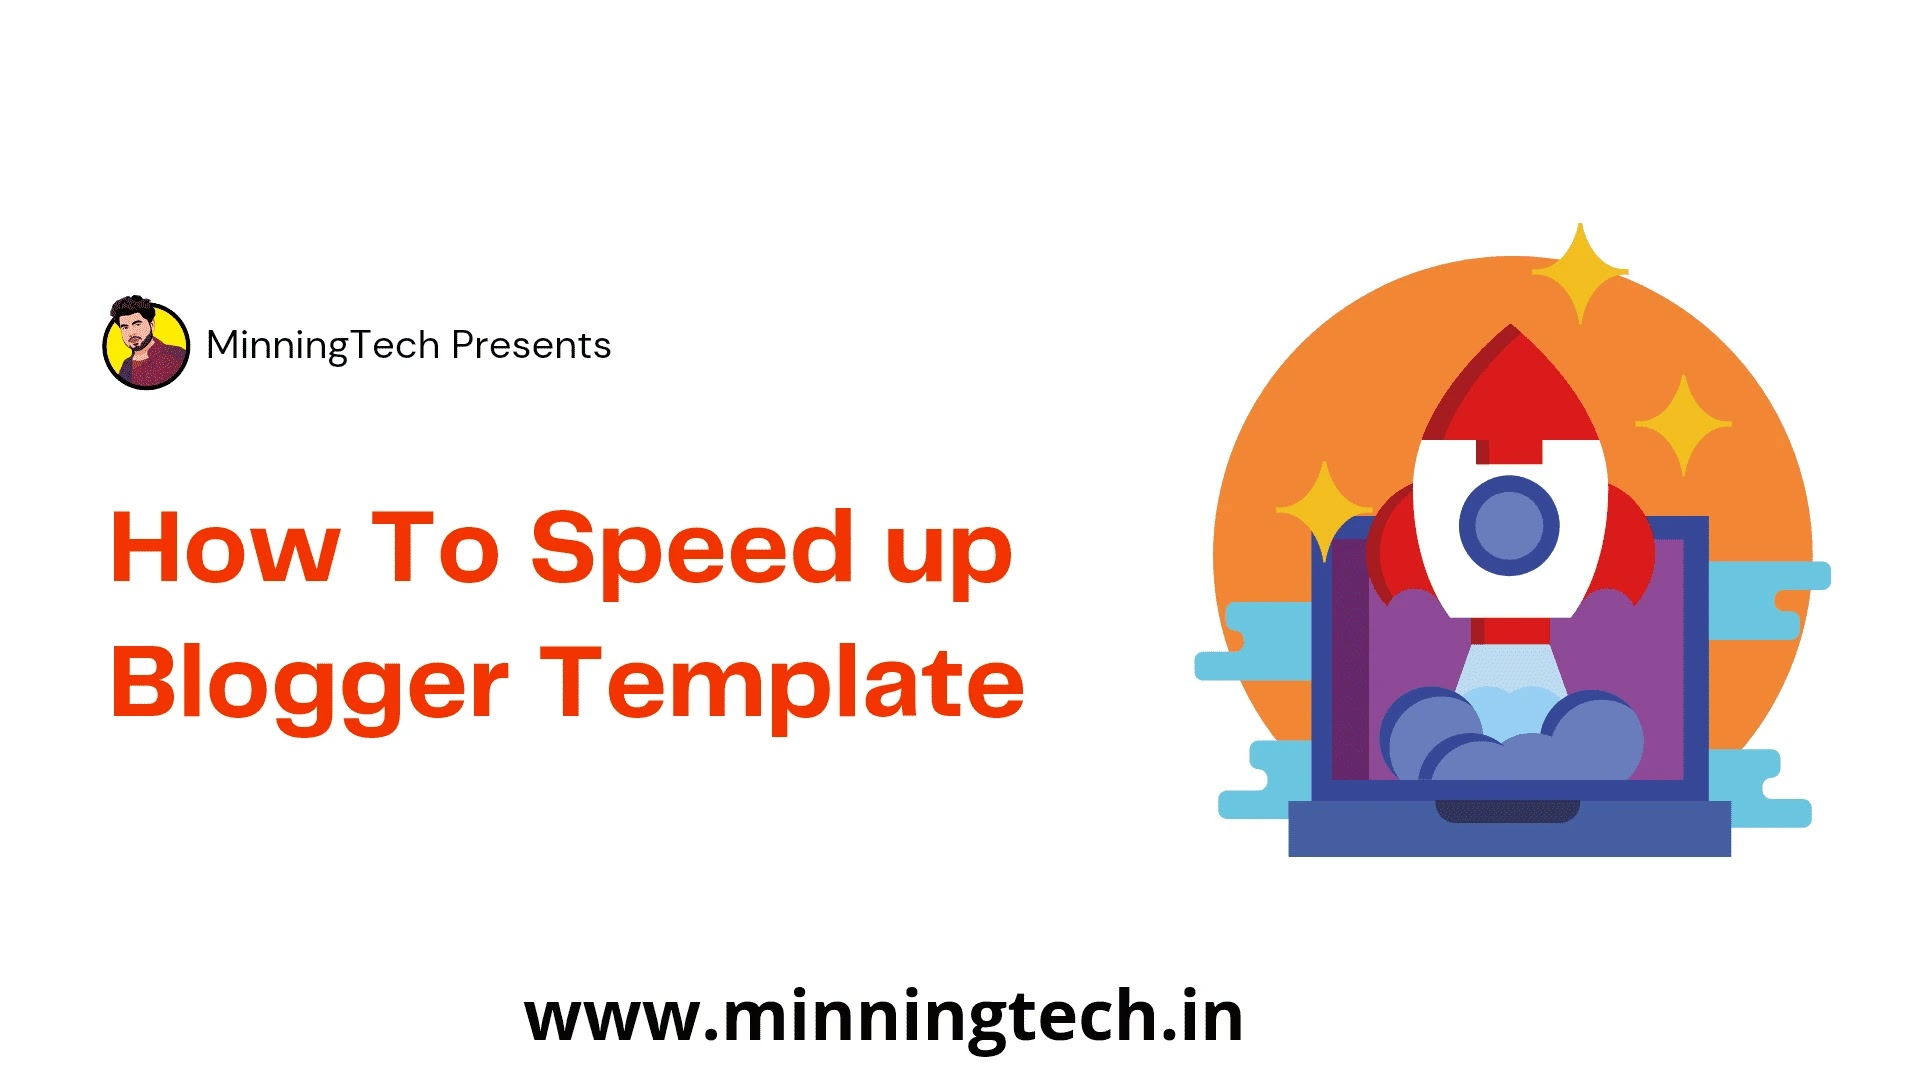 How to speed up Blogger Template